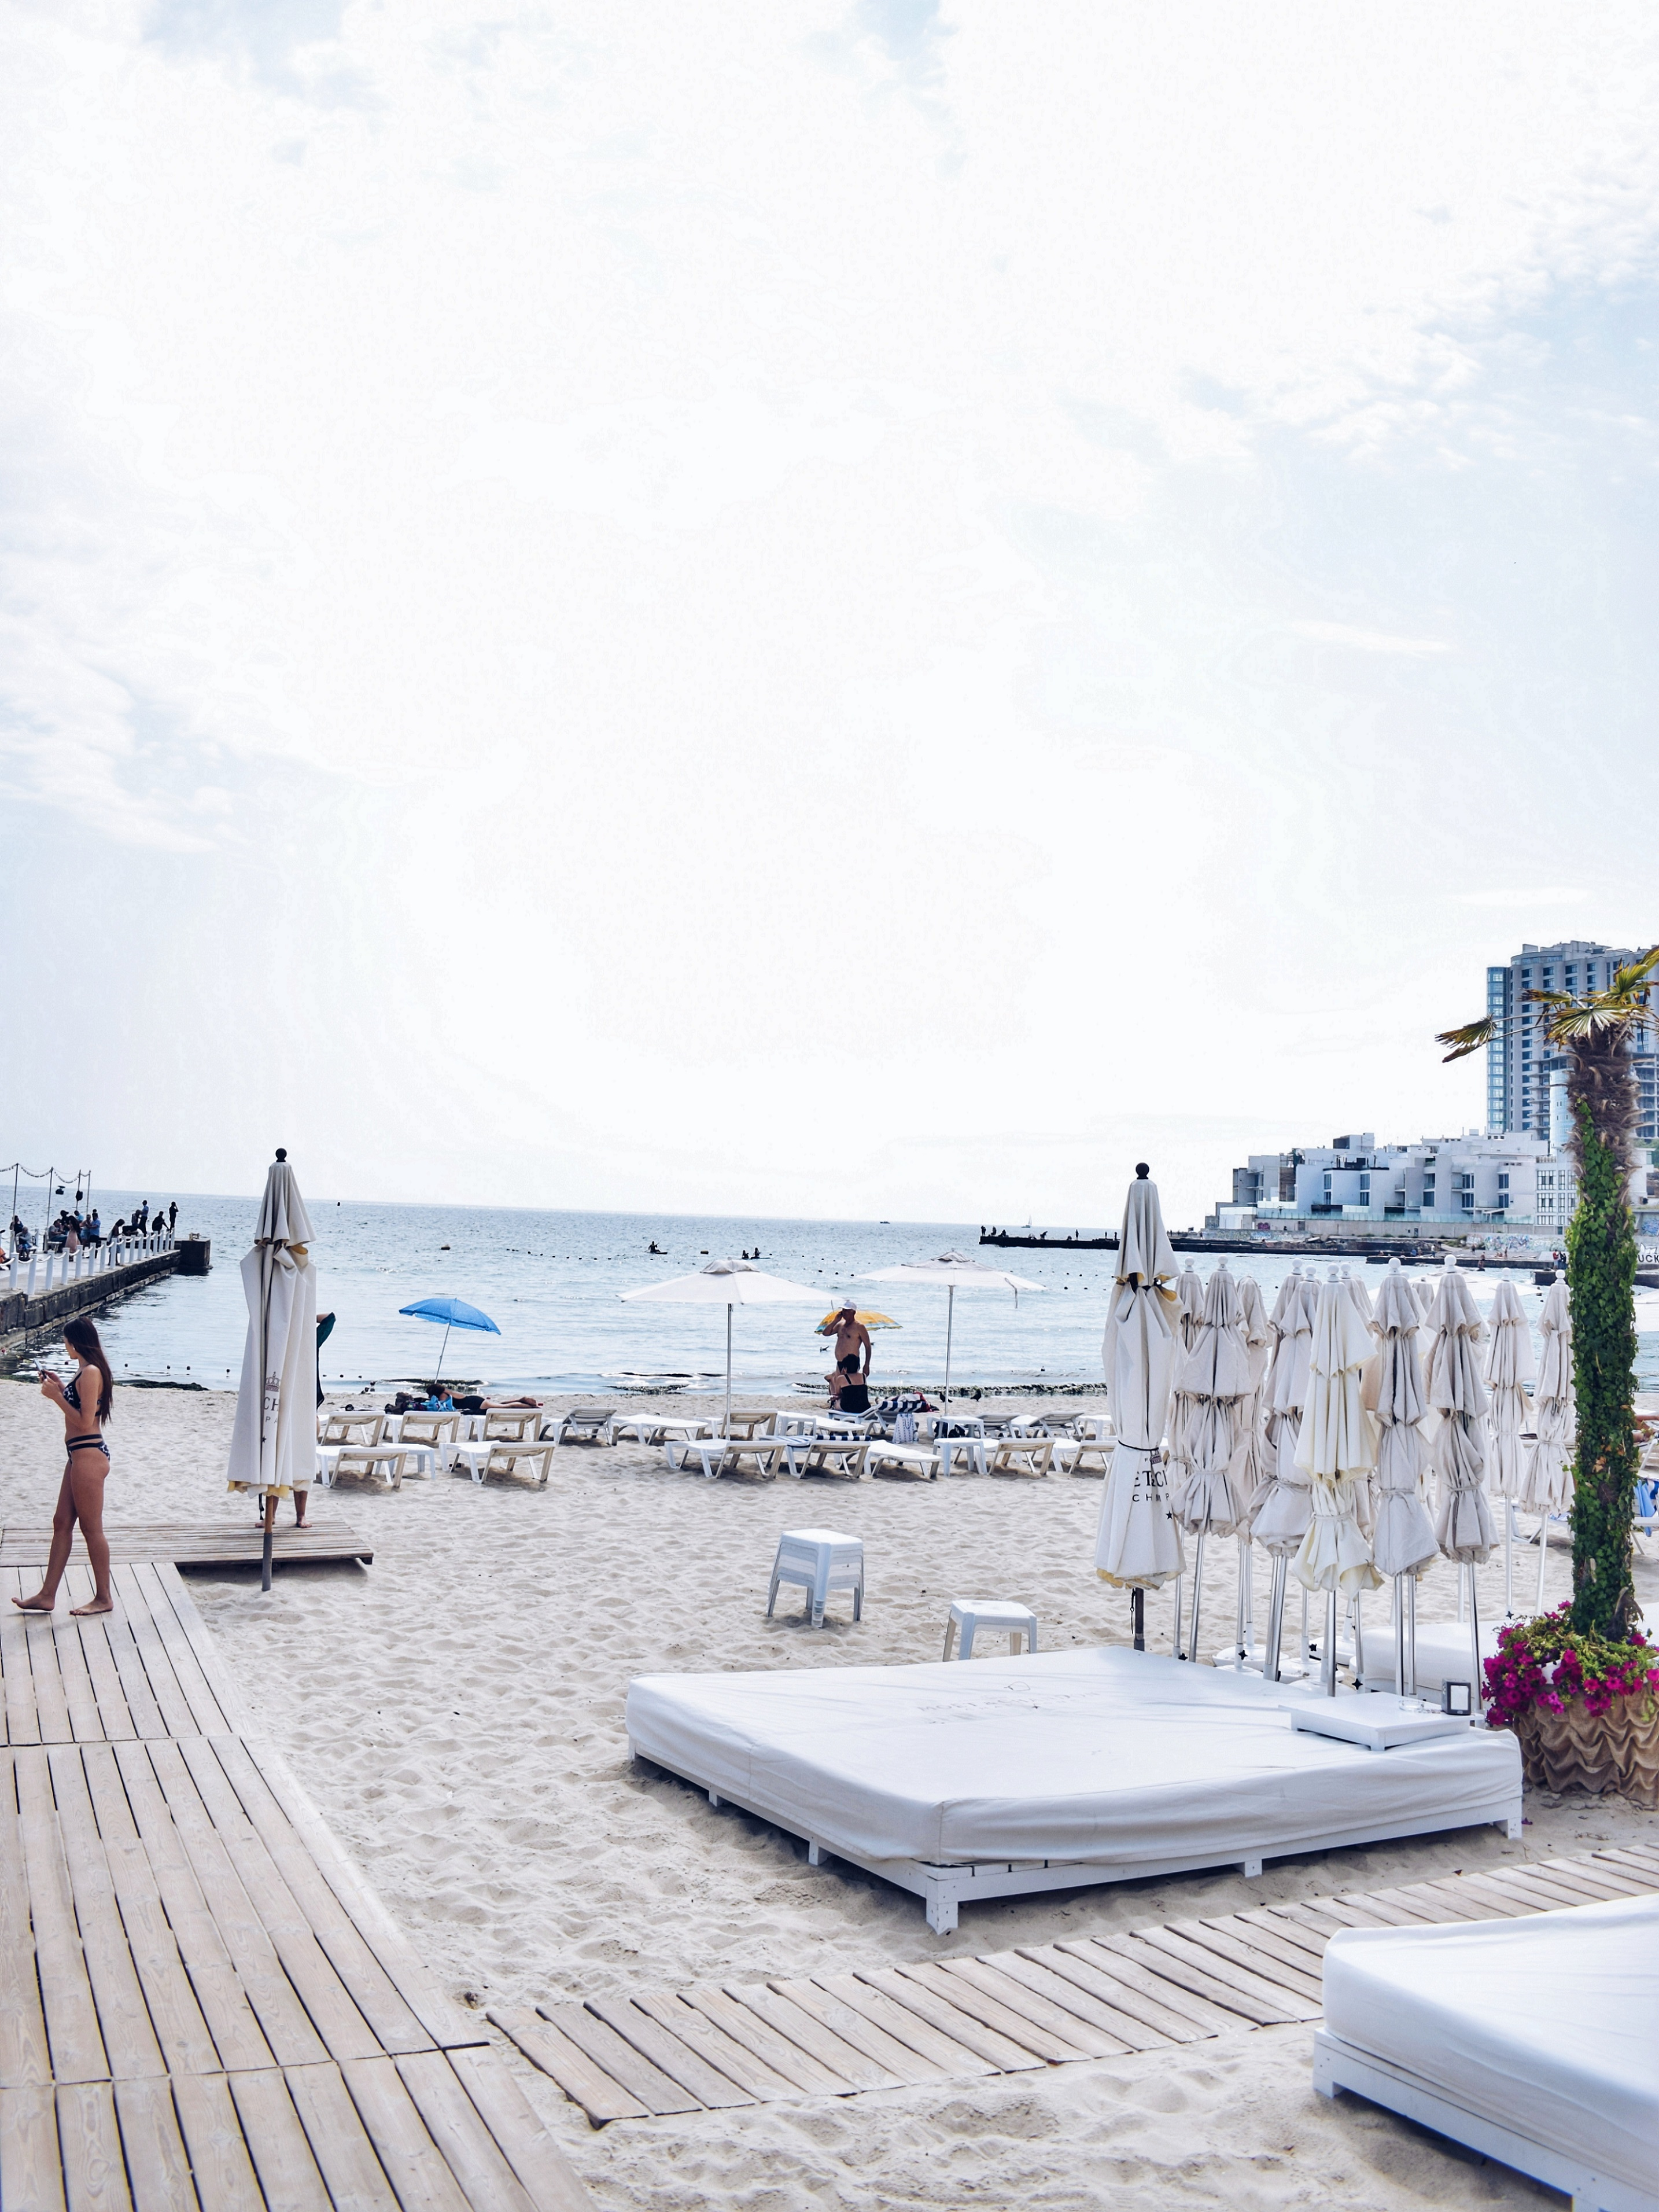 Beach Holiday in Incredible Odessa